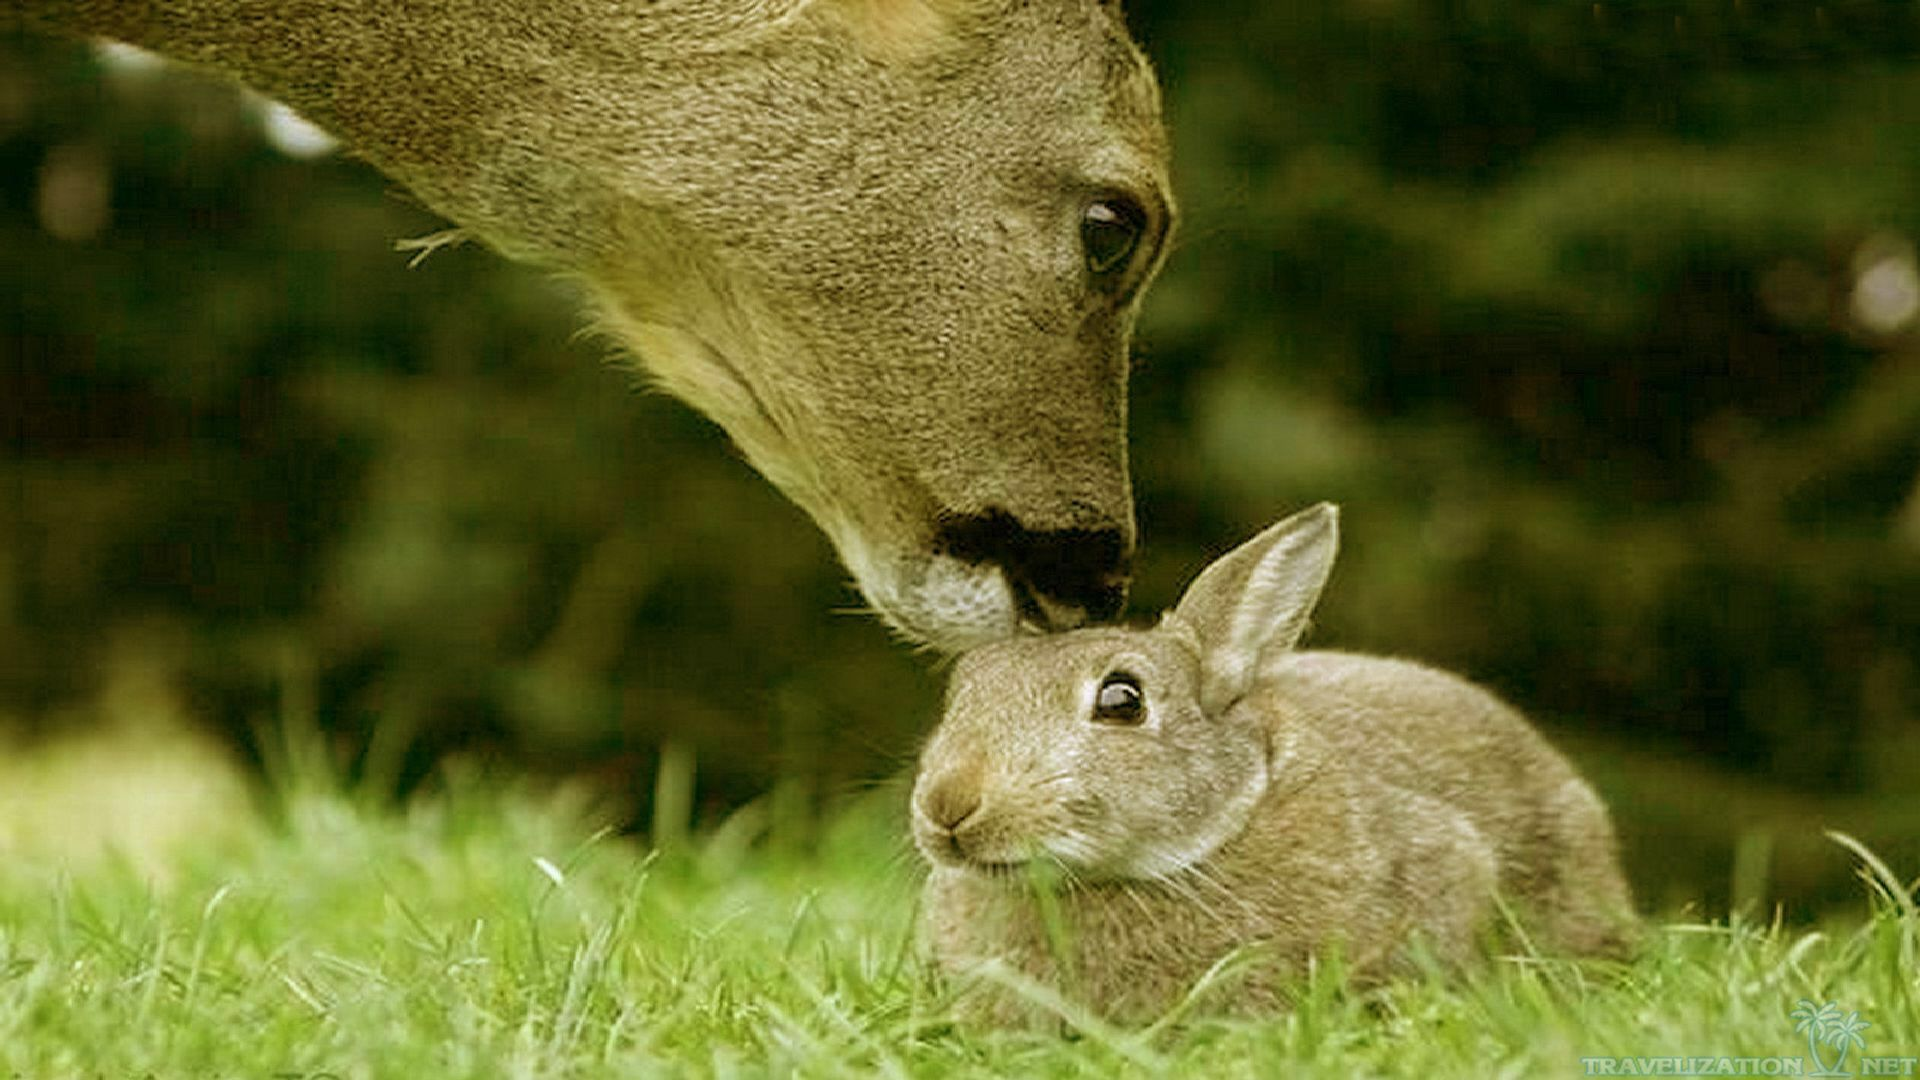 Image from http://wallpaperest.com/wallpapers/bunny-and-deer-cute-animals_087259.jpg.